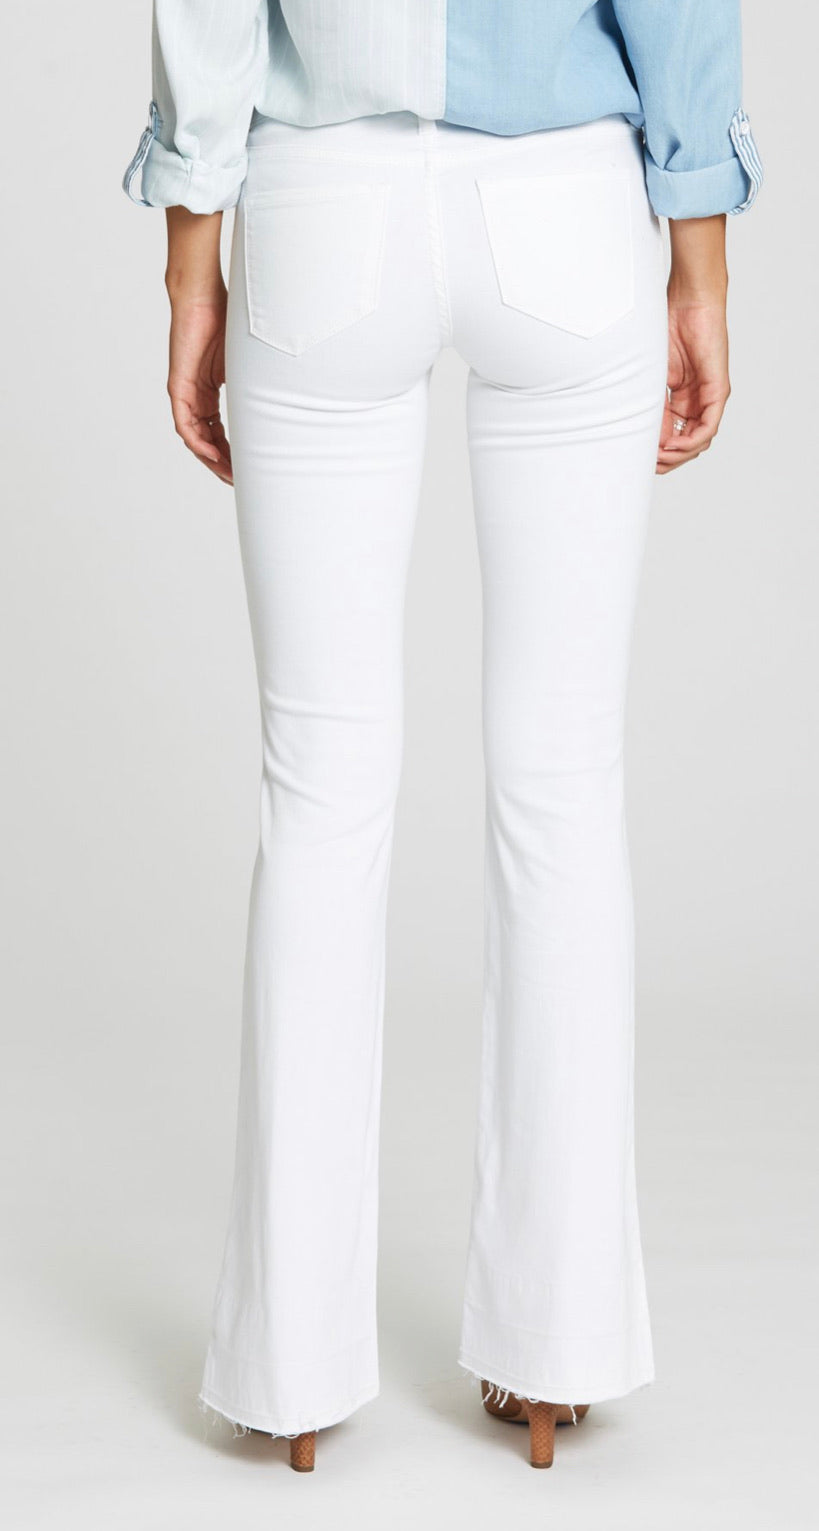 Optic White Jean